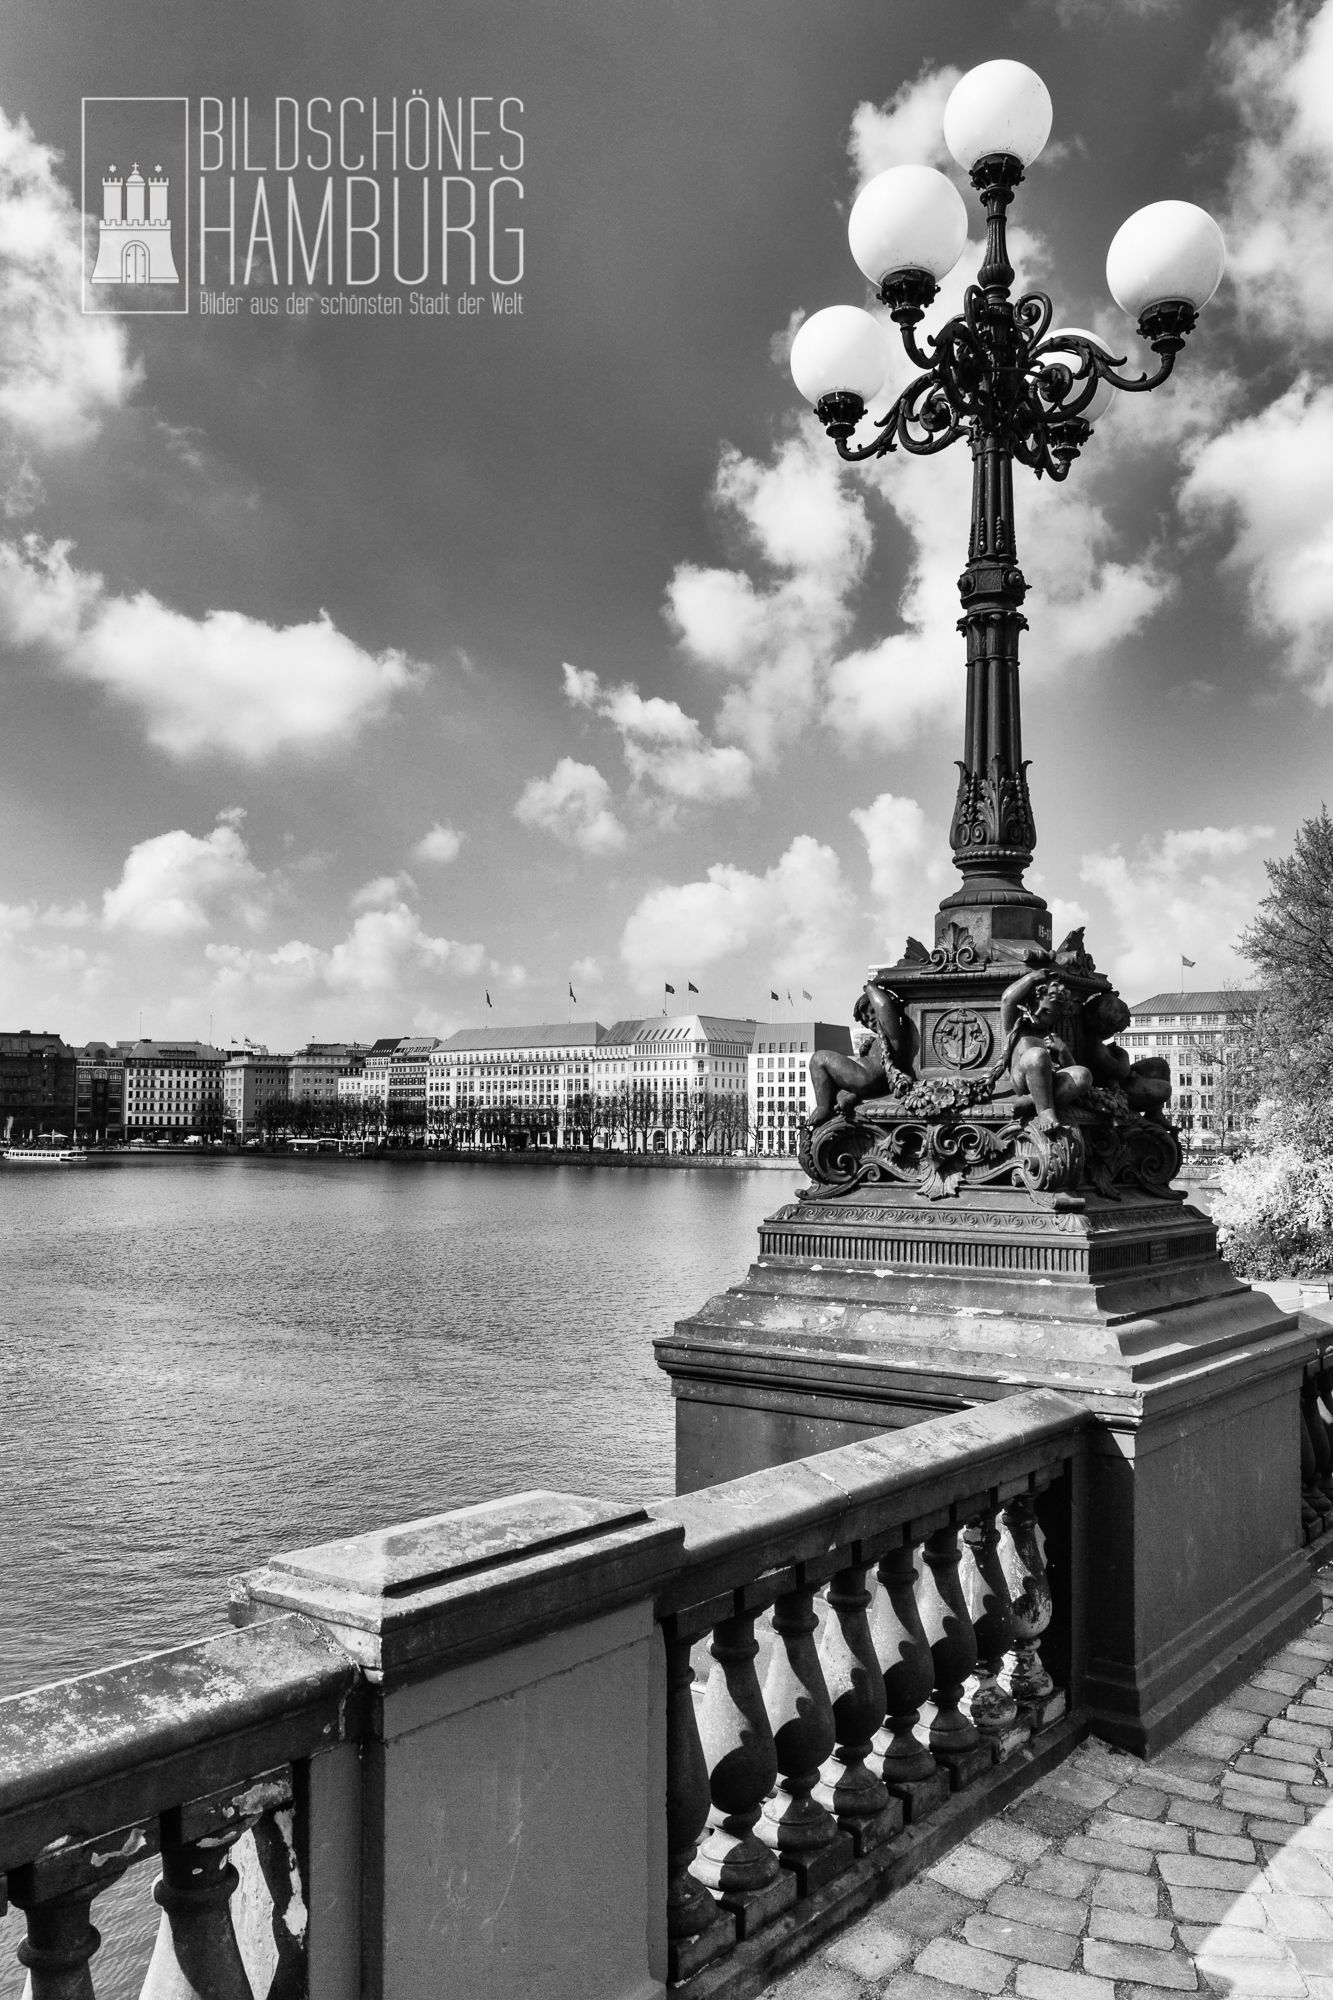 hamburger binnenalster in schwarz wei bildsch nes hamburg bildsch nes hamburg pinterest. Black Bedroom Furniture Sets. Home Design Ideas